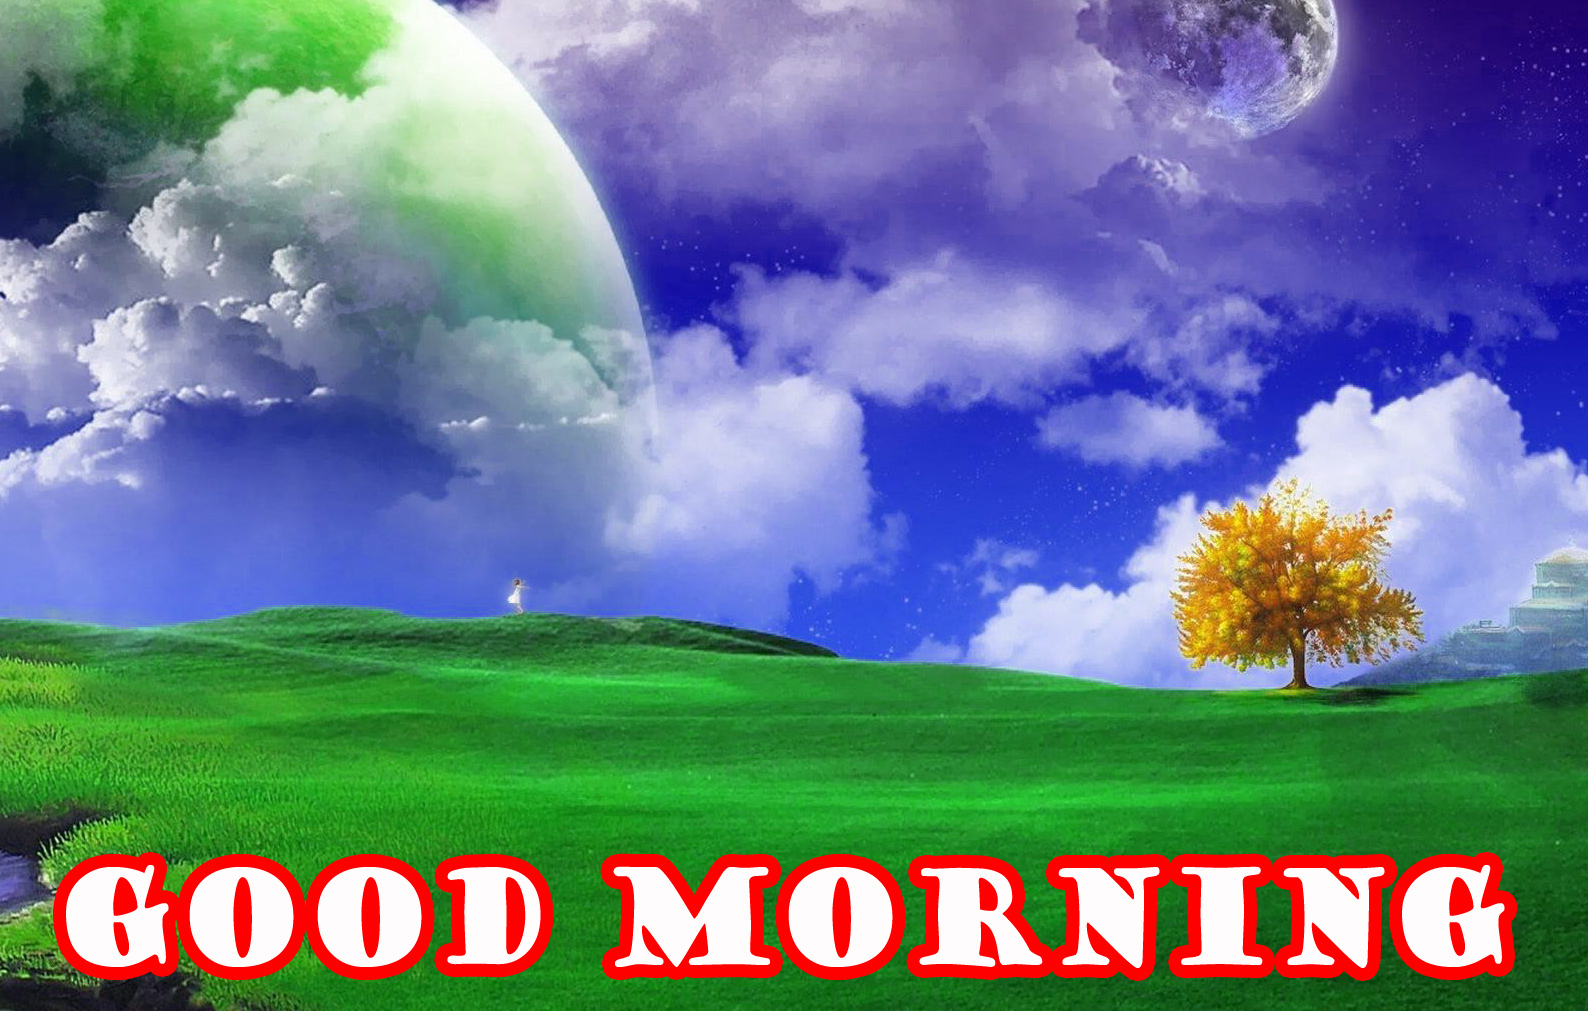 गुड मॉर्निंग New Wonderful Good Morning Wallpaper Pictures Images Free HD Download